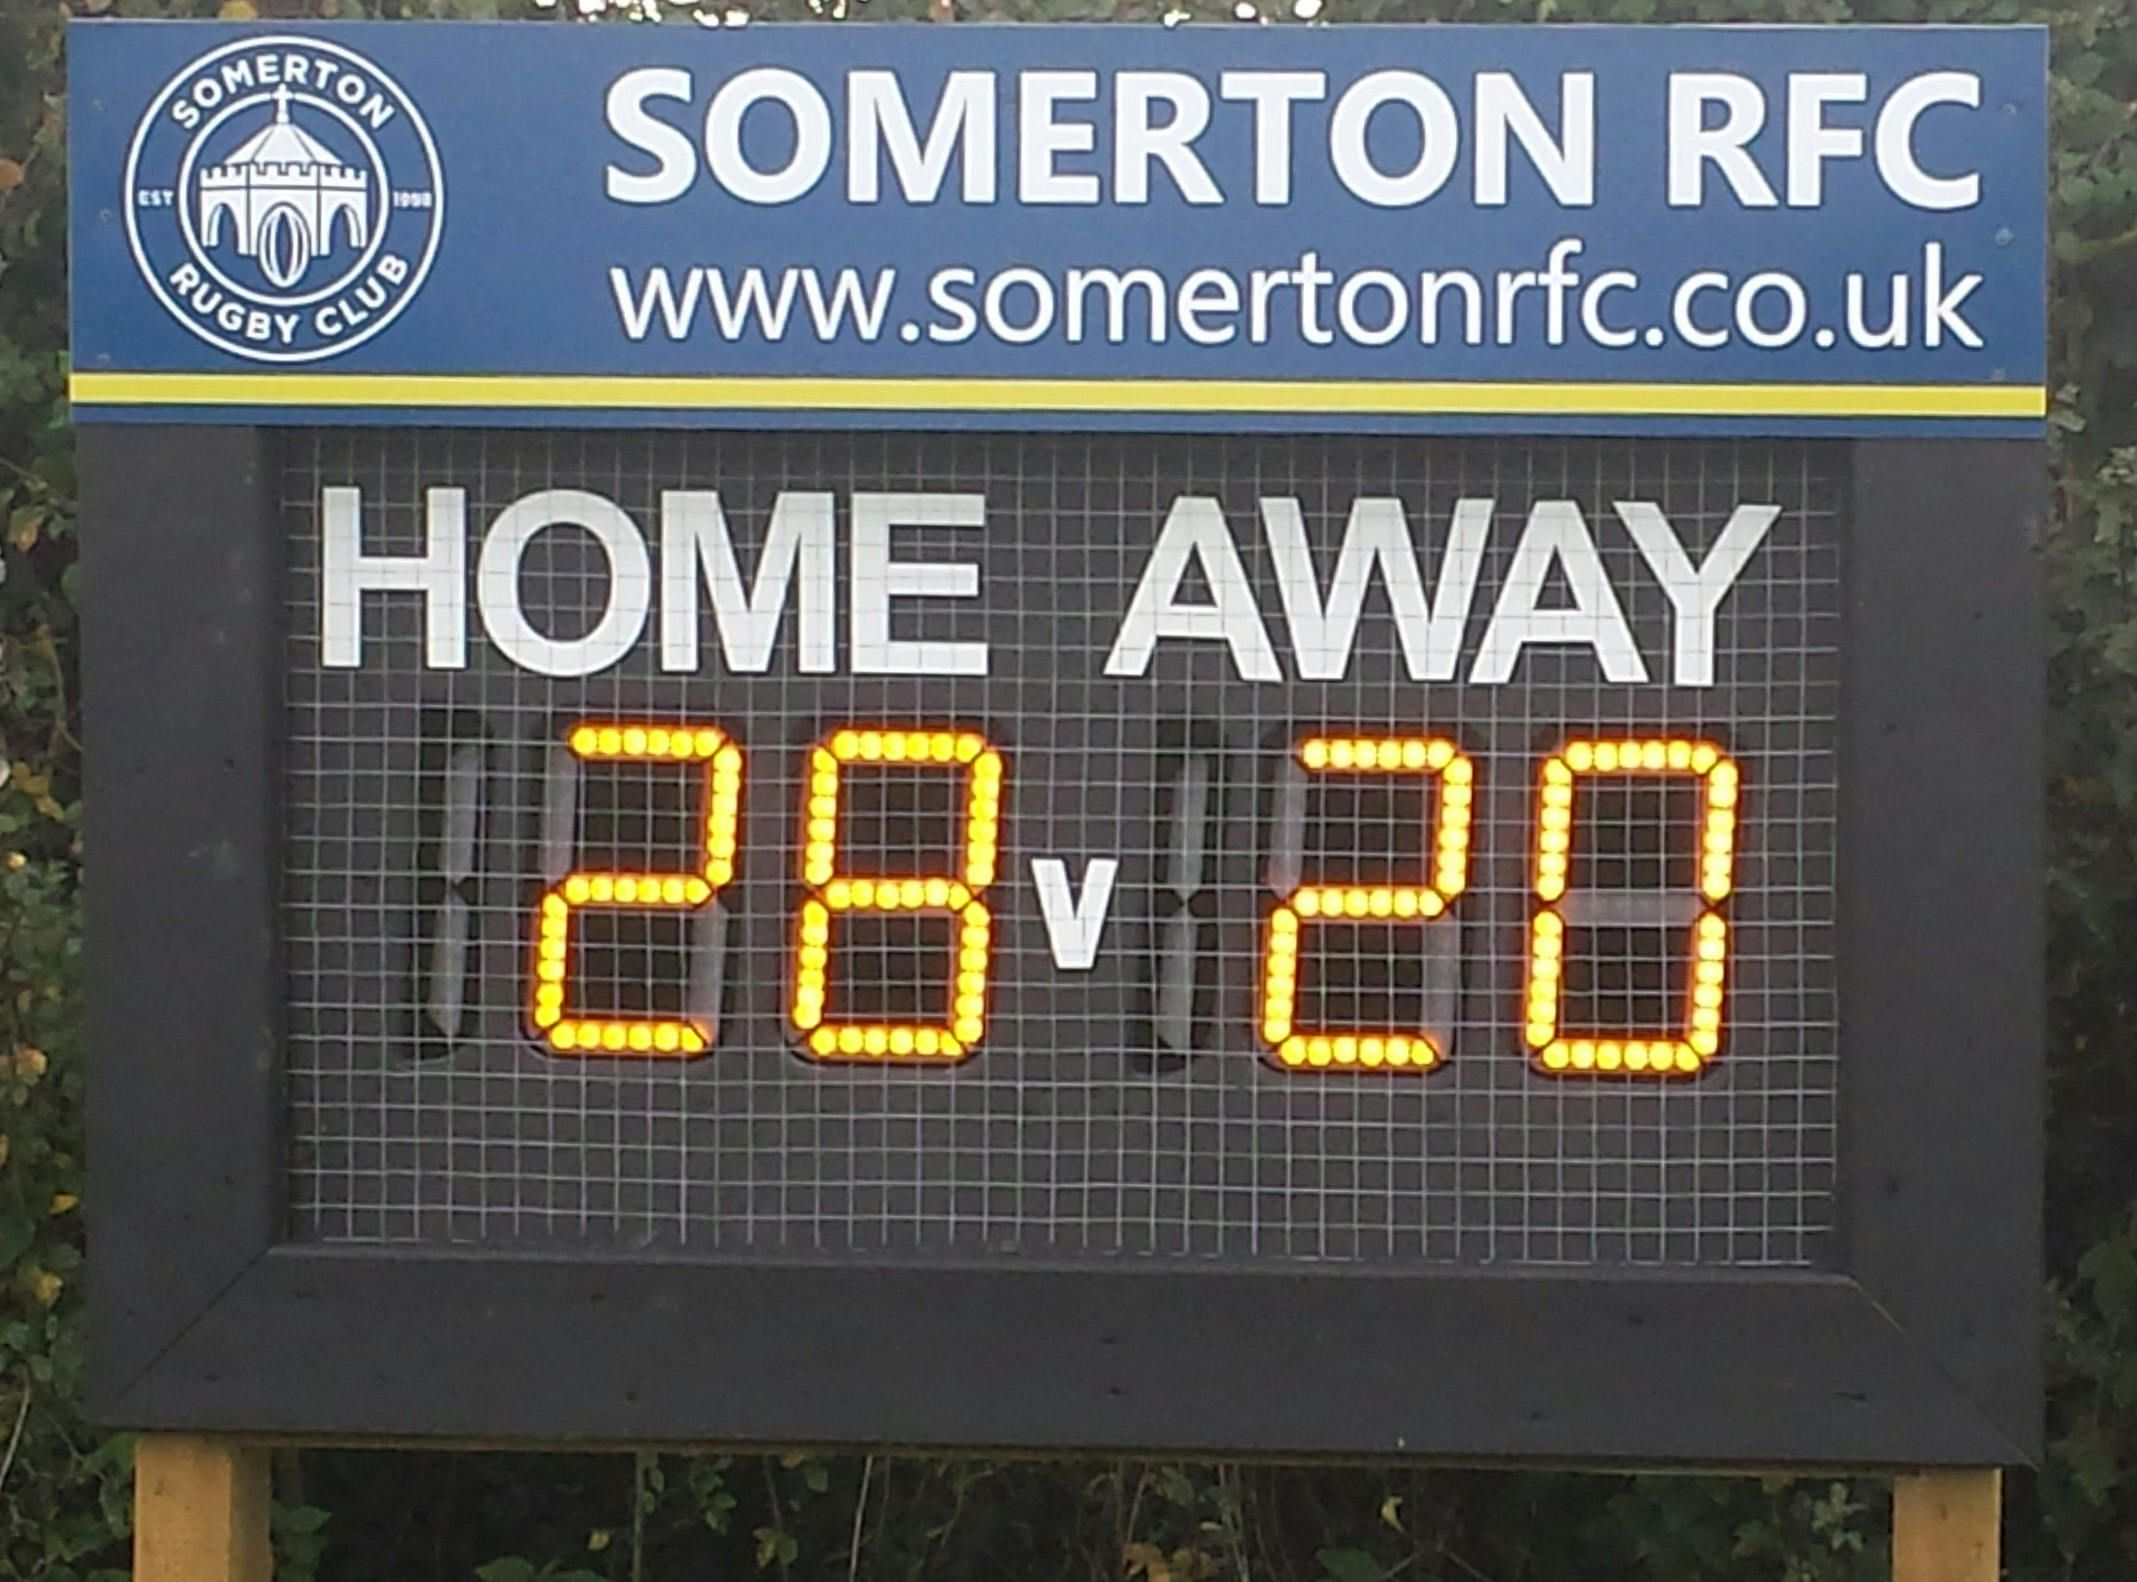 LED Electronic Rugby Union Scoreboard Android App